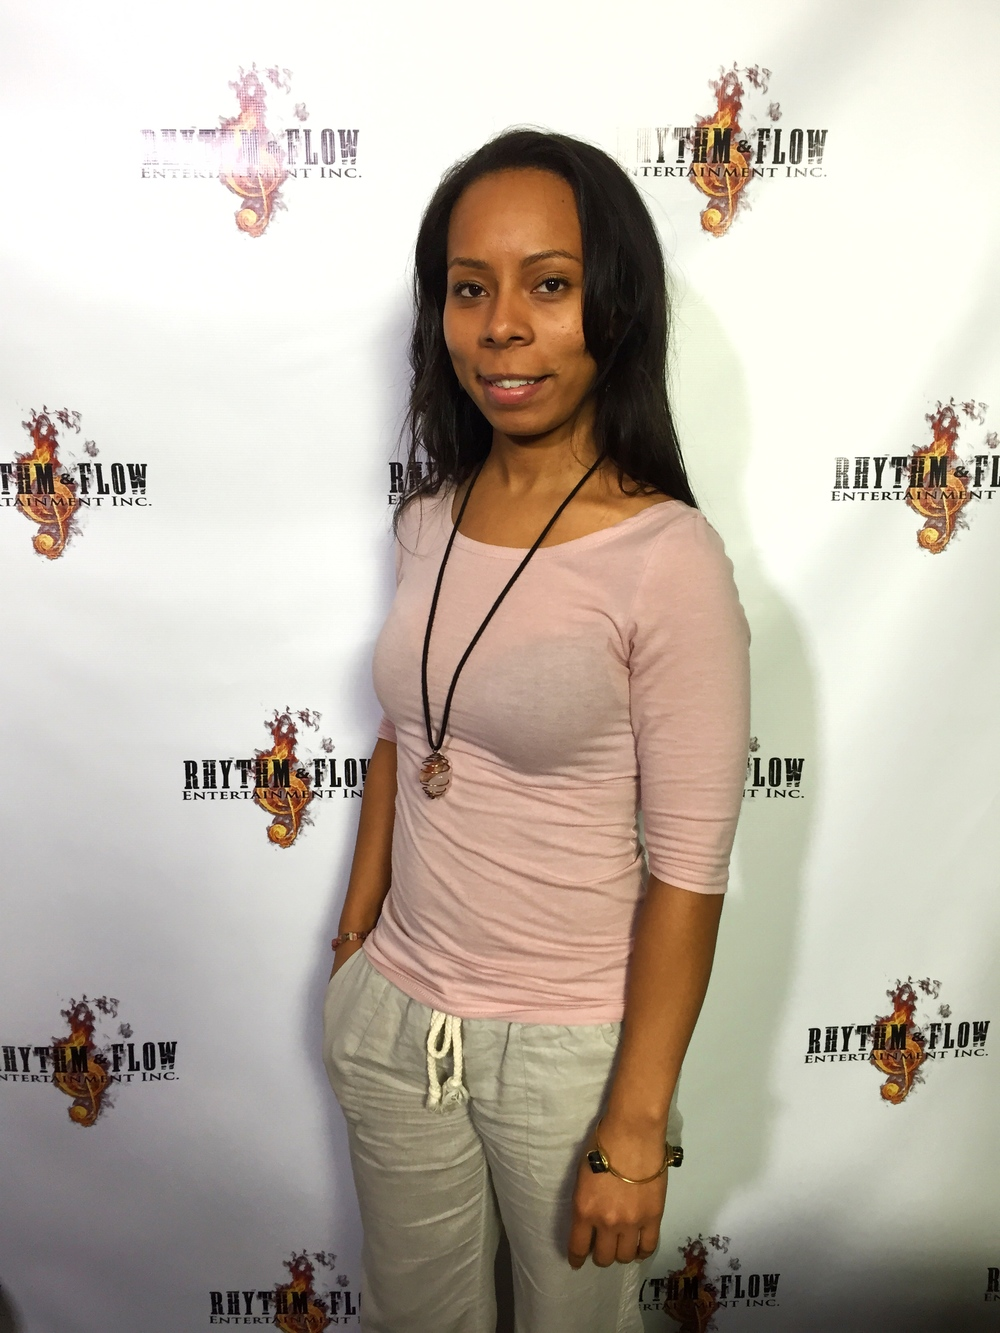 Actress Shanae Harris at RHYTHM&FLOW ENTERTAINMENT INC.